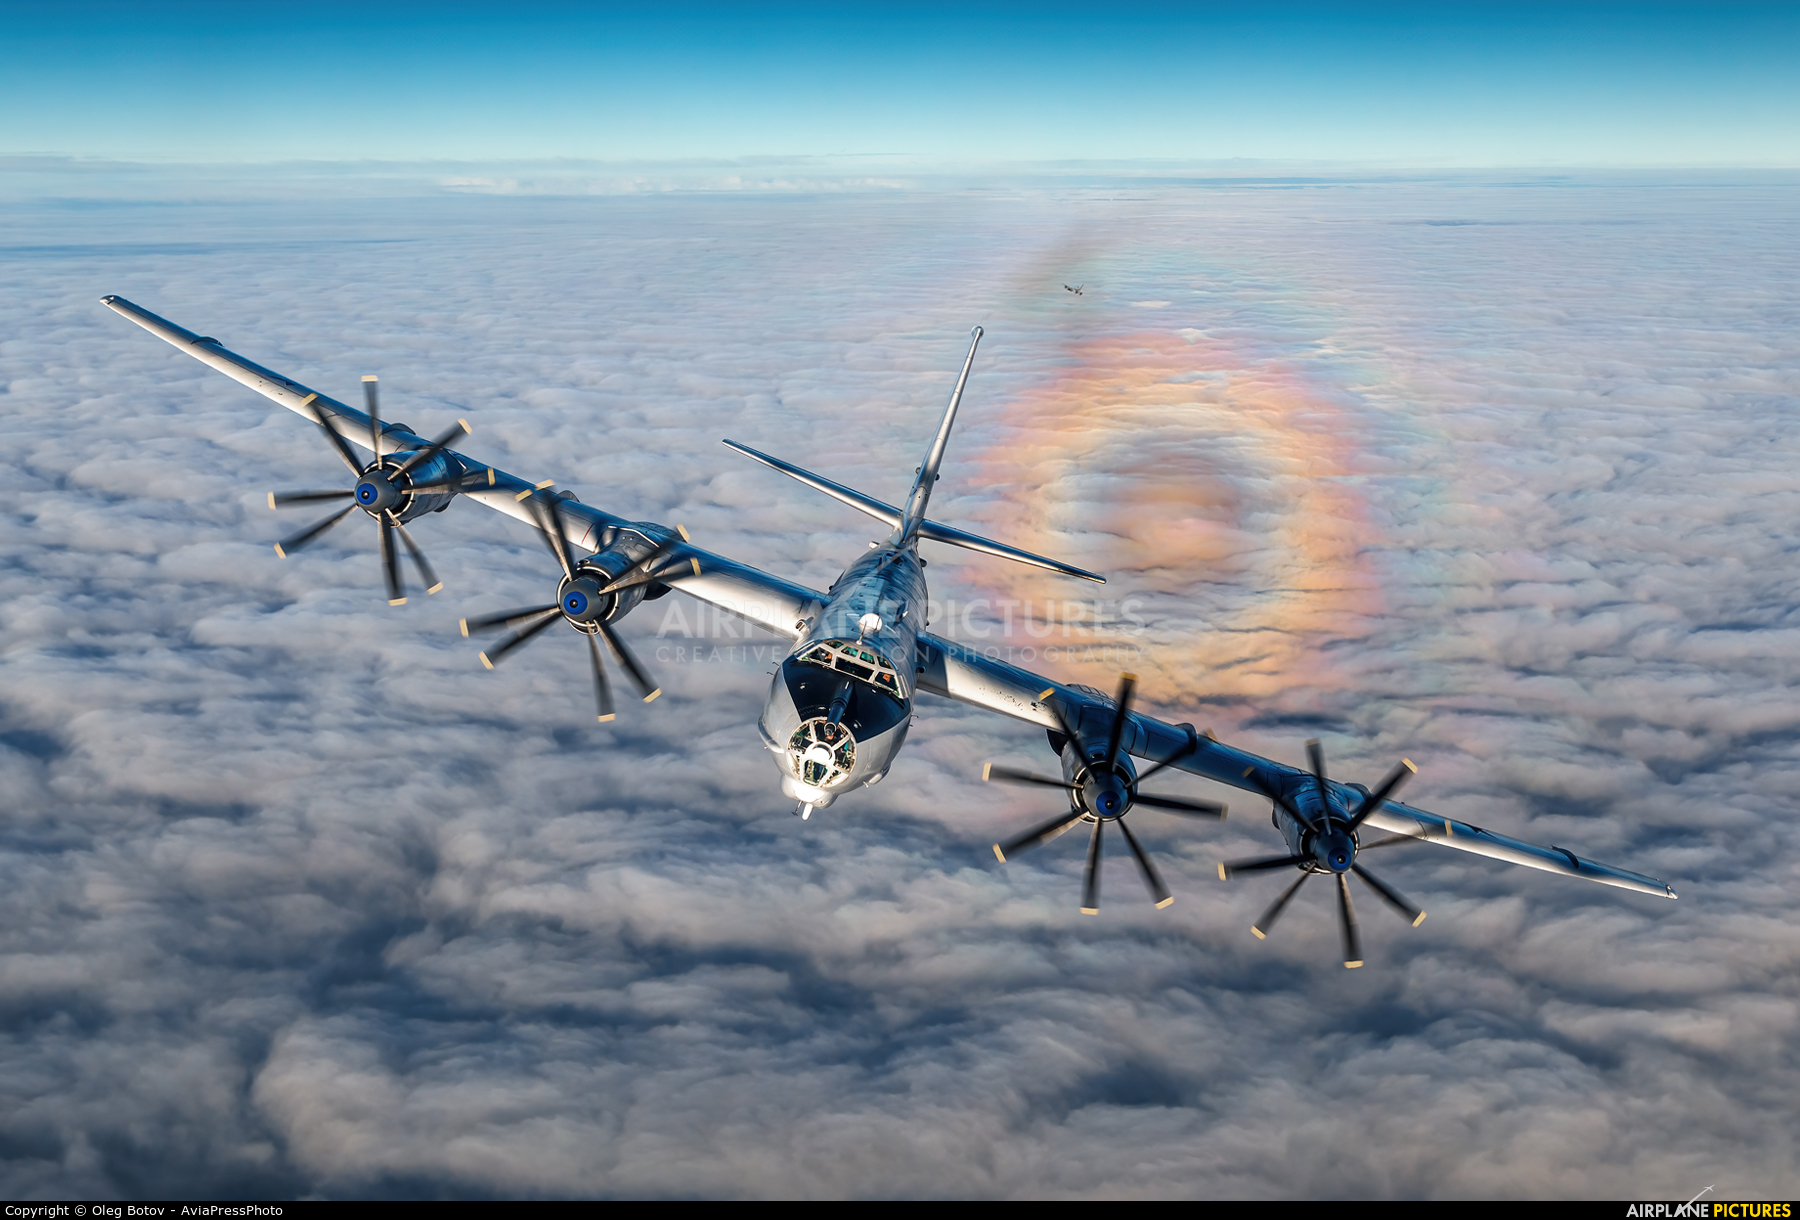 Russia - Navy RF-34098 aircraft at In Flight - Russia